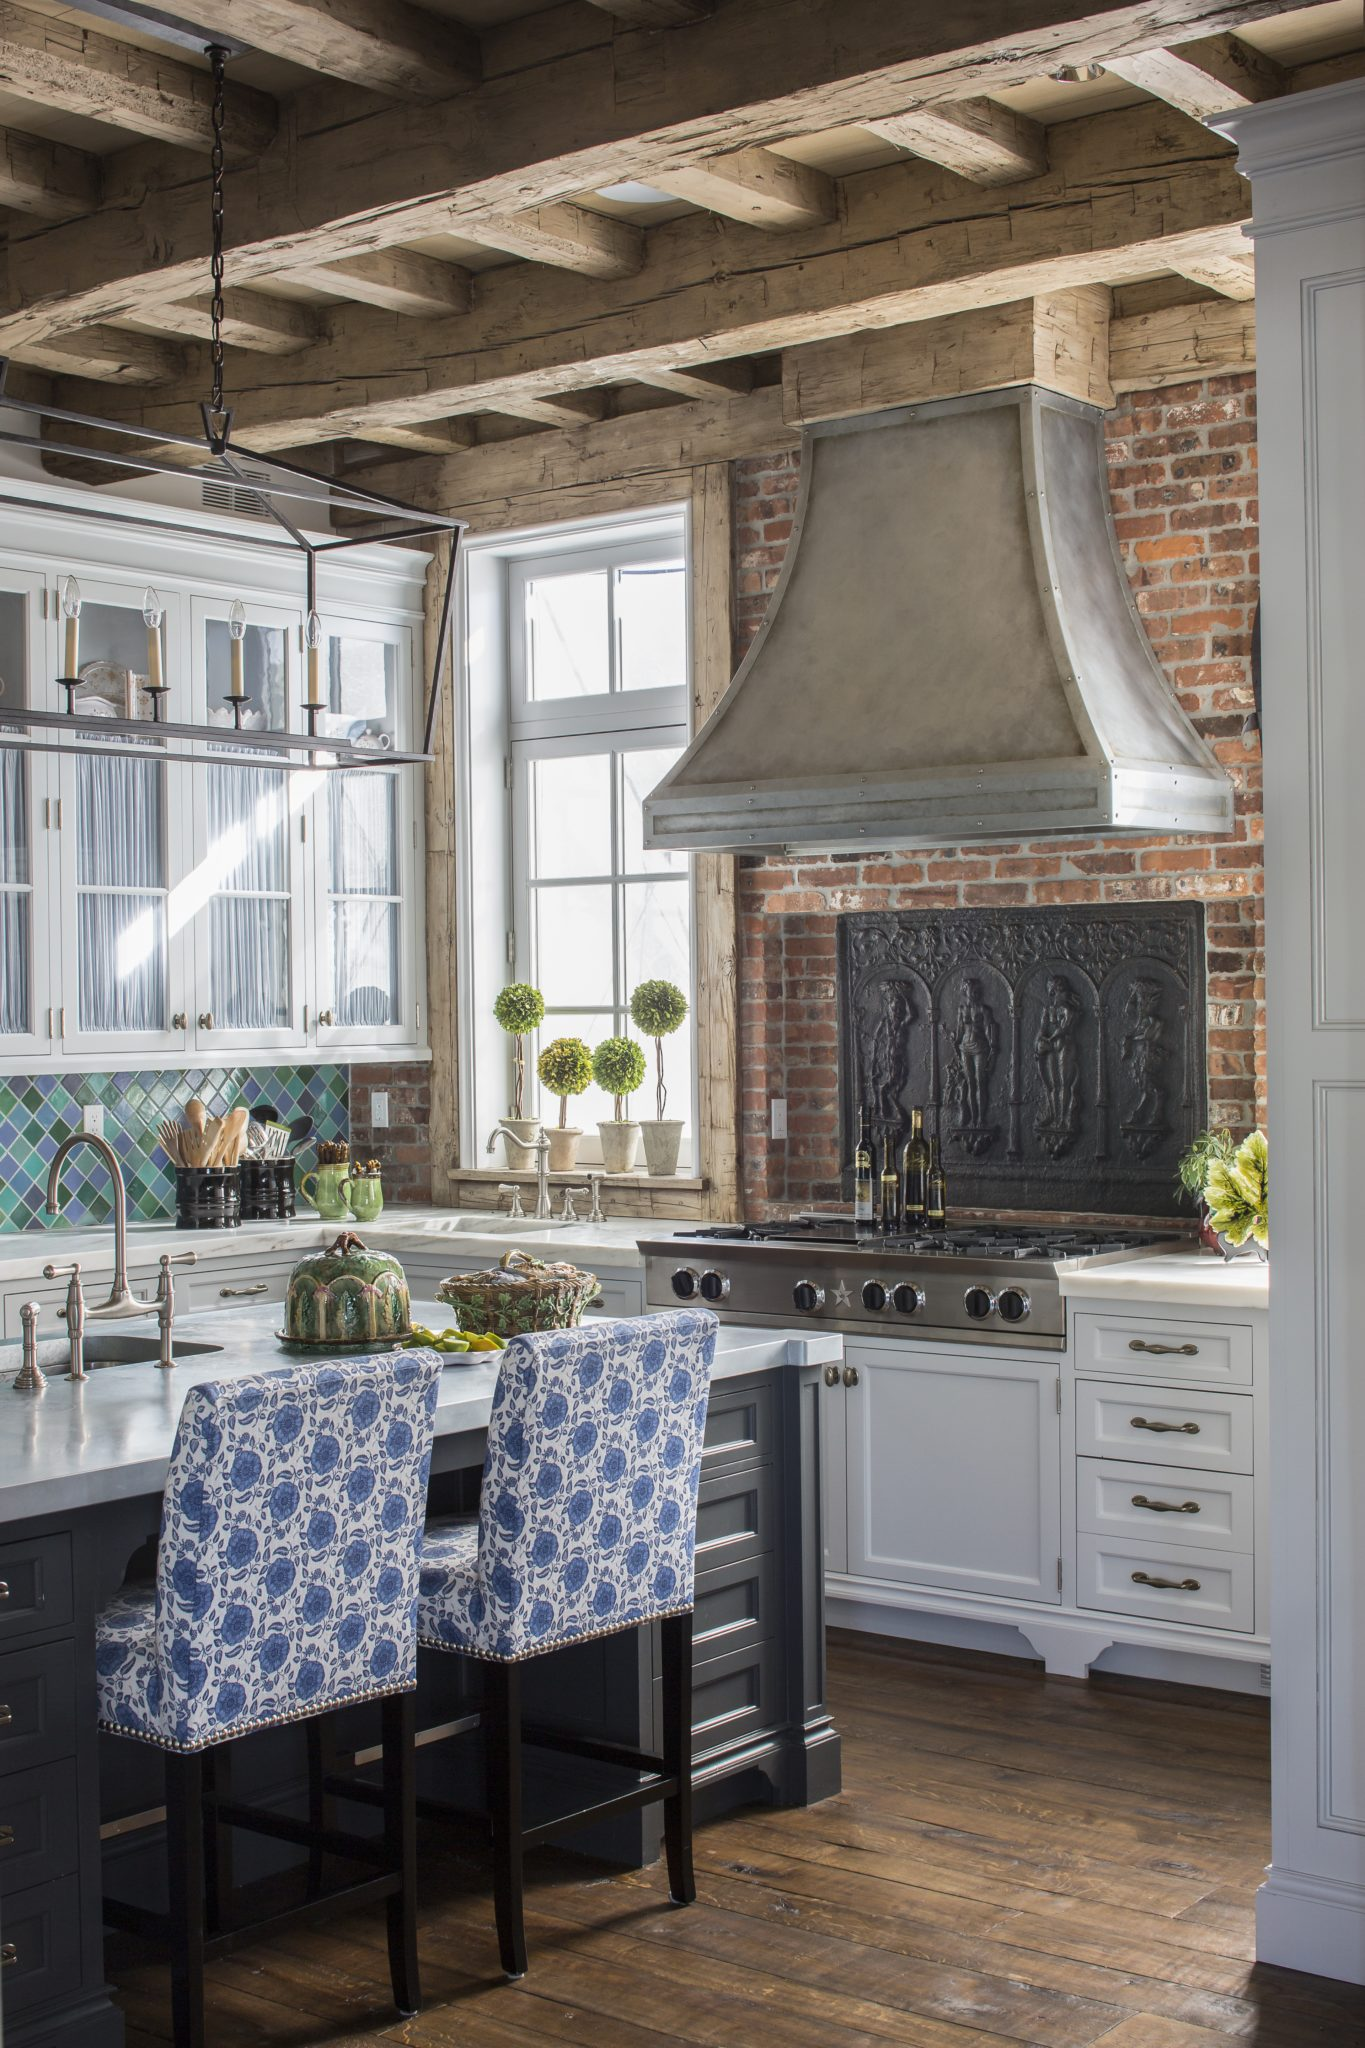 A cast iron decorative piece adorns the brick backsplash behind the silver hood. By Sarah Blank Design Studio